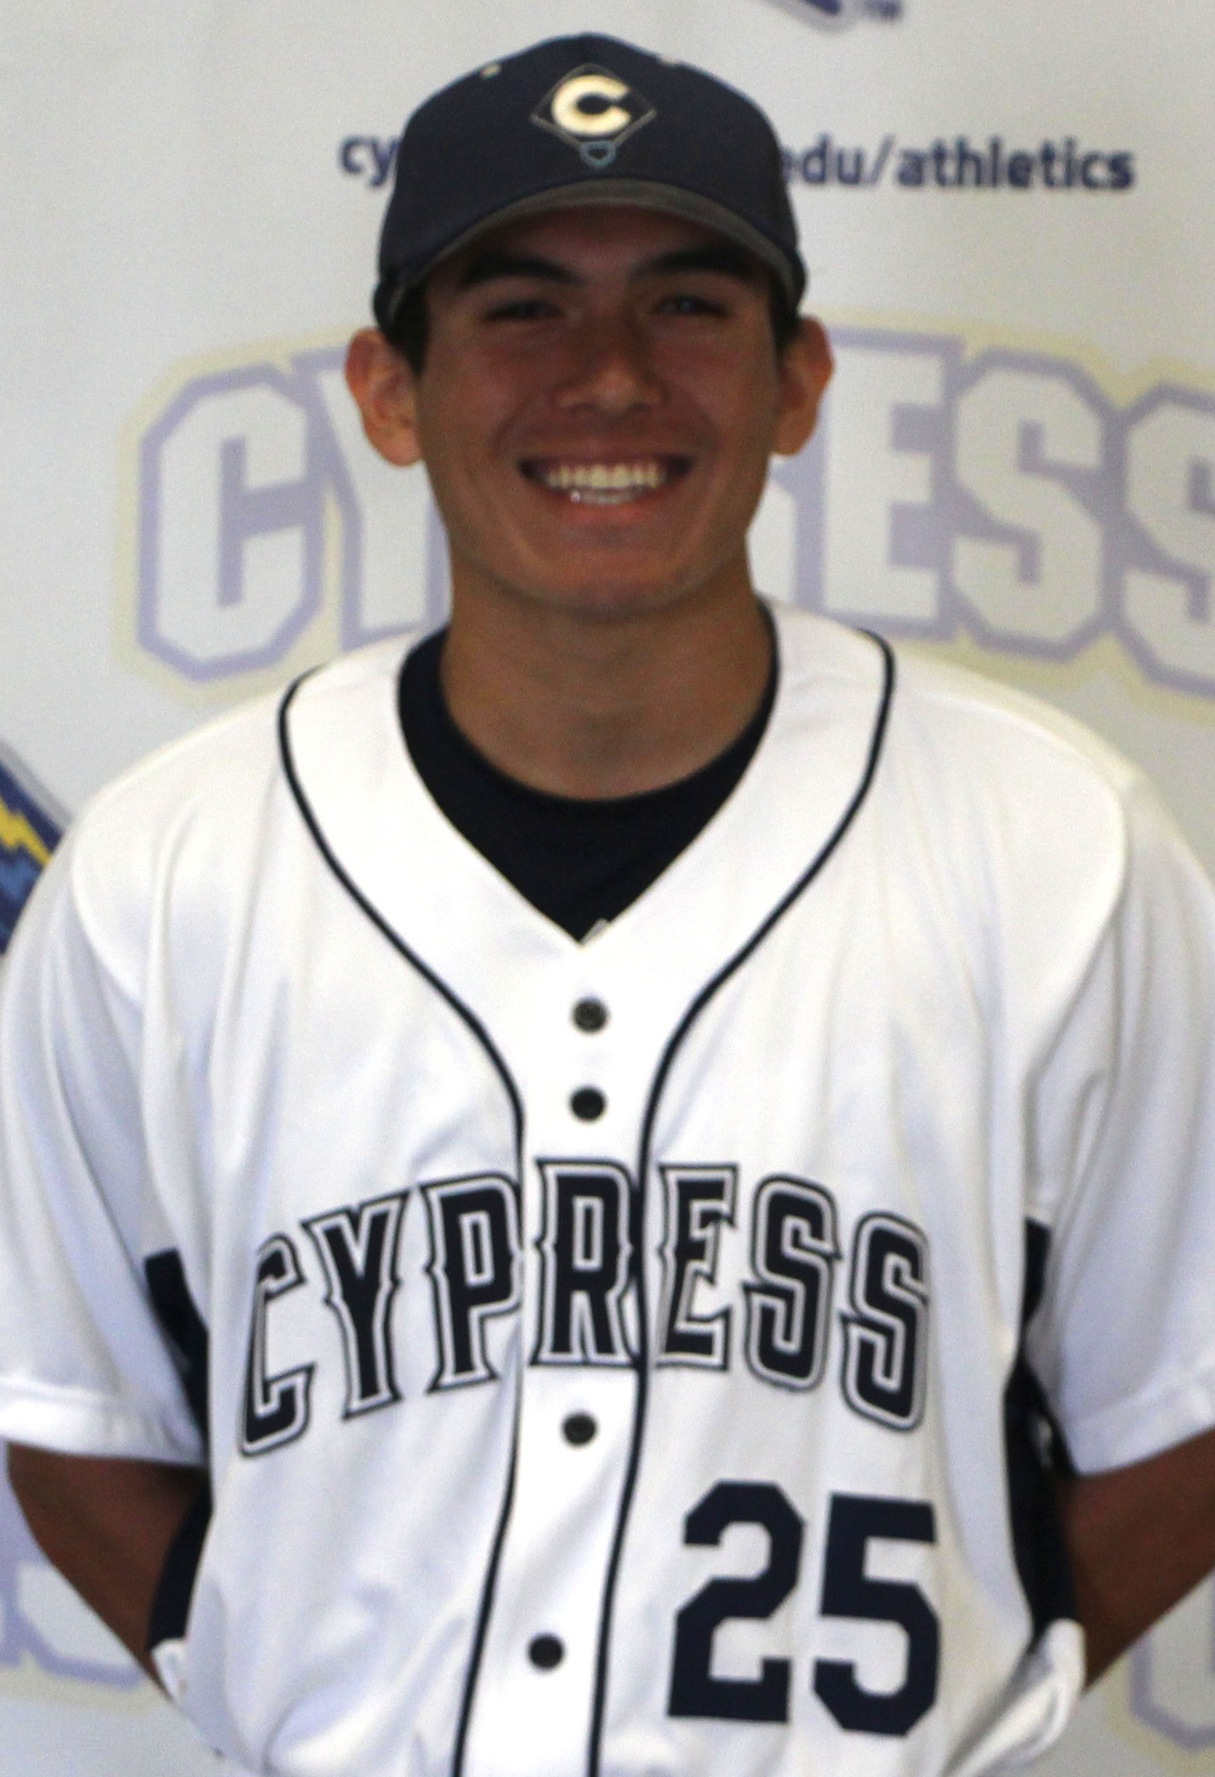 Aaron Lizarraga Earns Charger of the Week (Apr. 9-15)